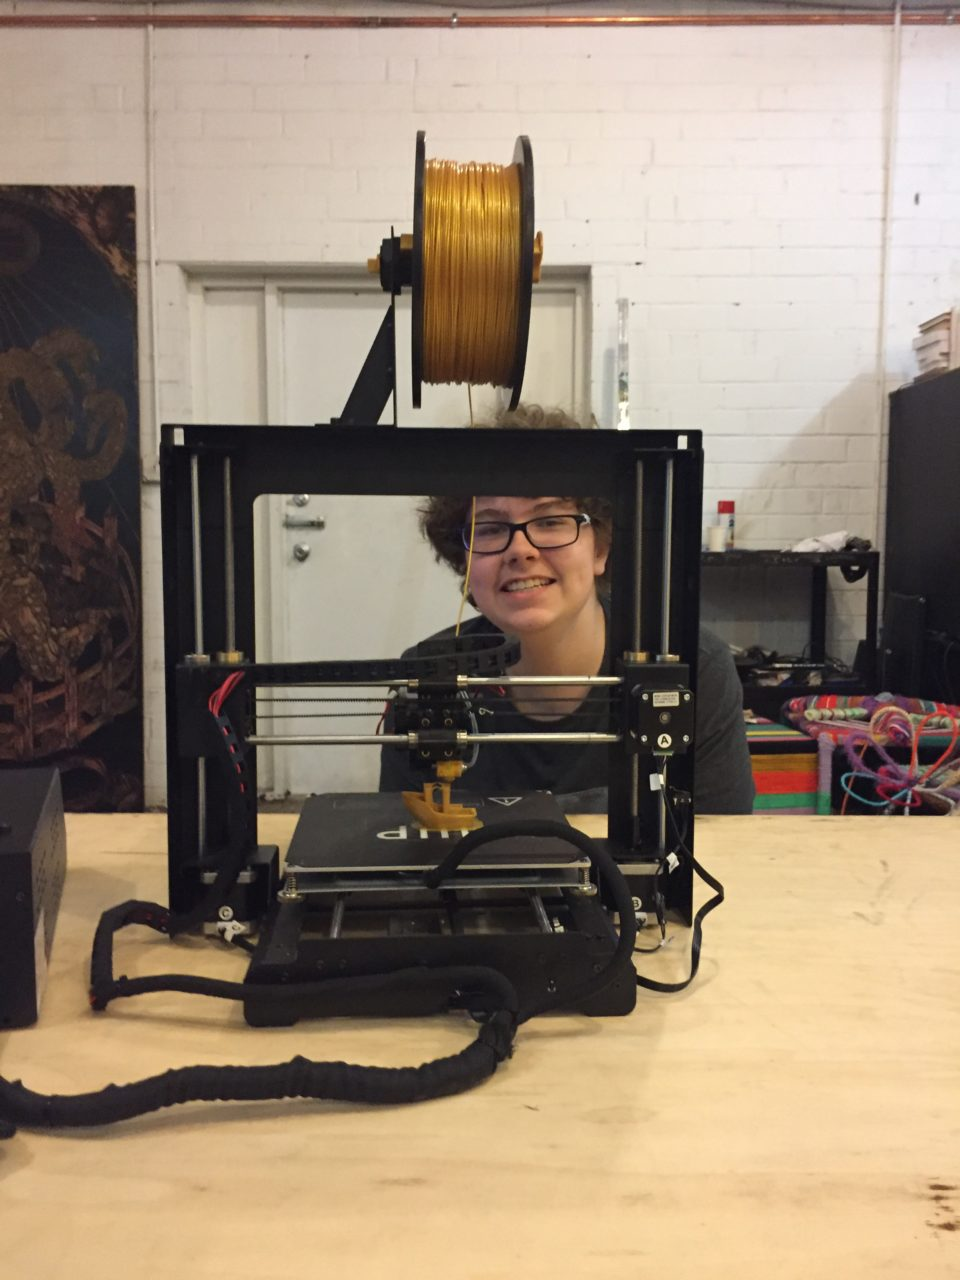 The fun of playing on a 3D printer. Copyright Andrea LeDew.